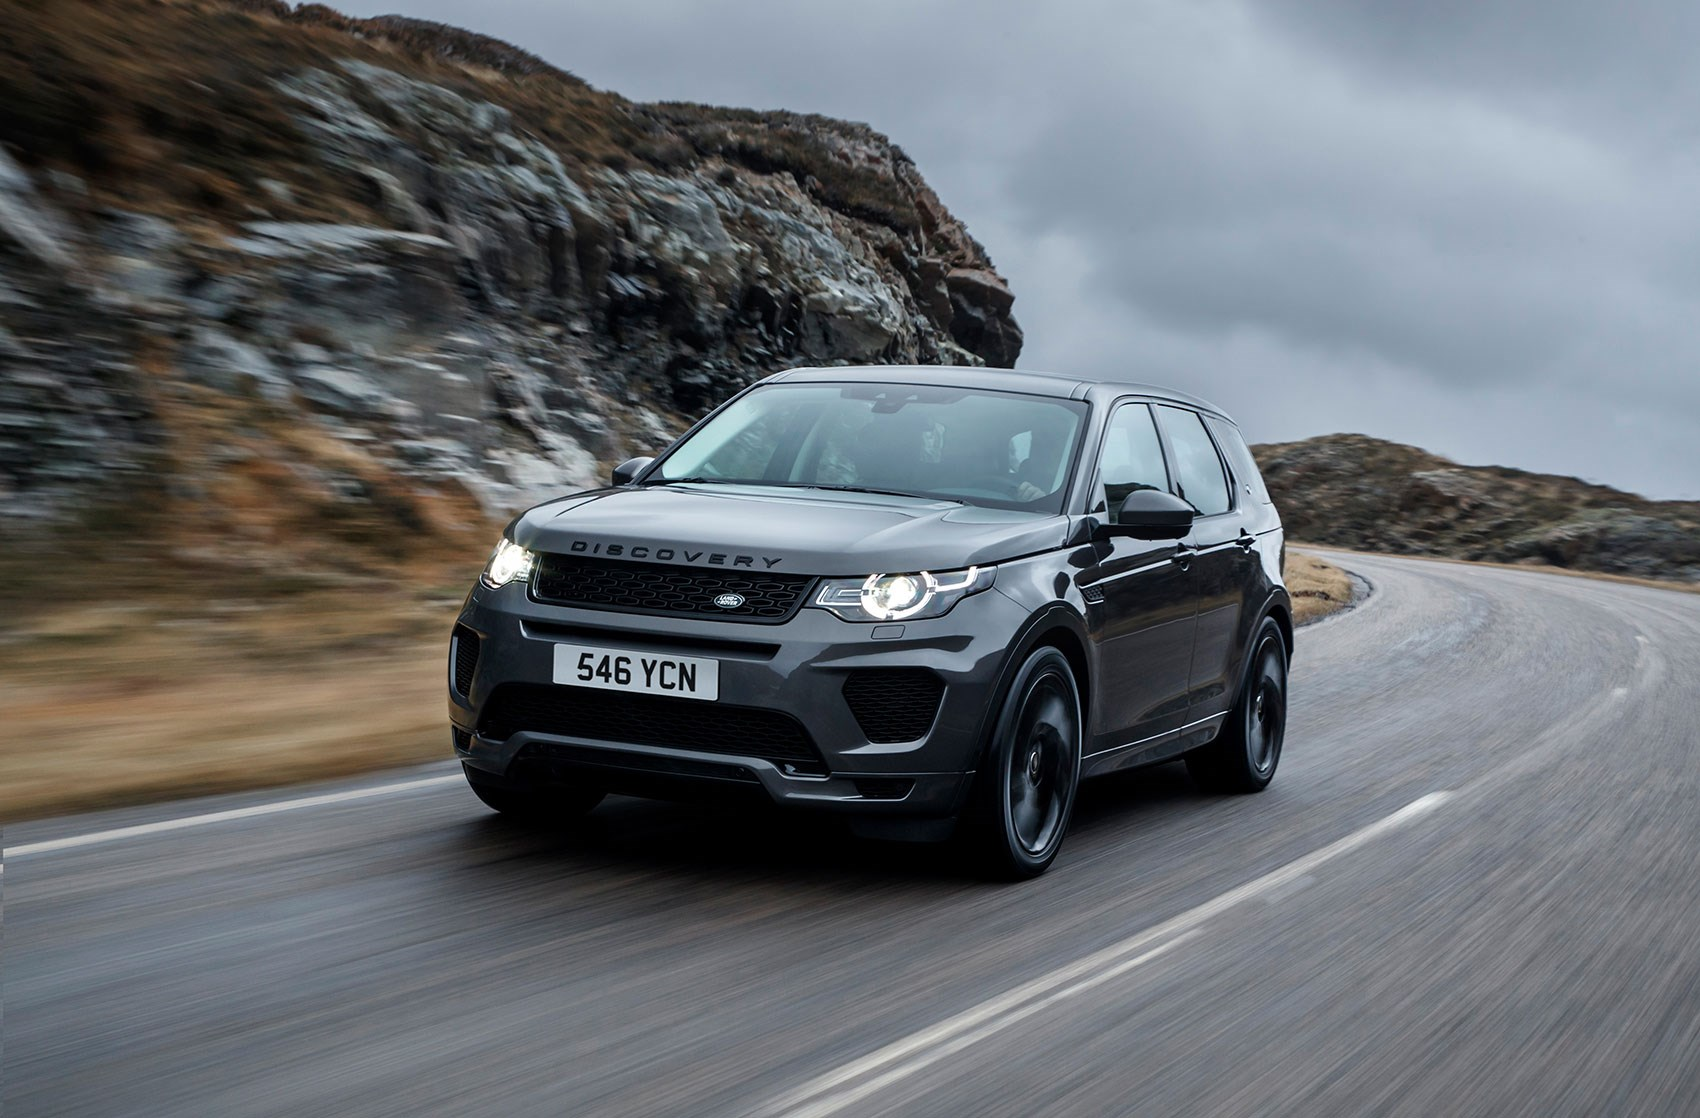 land rover discovery sport range rover evoque 2018 model year engine specs by car magazine. Black Bedroom Furniture Sets. Home Design Ideas